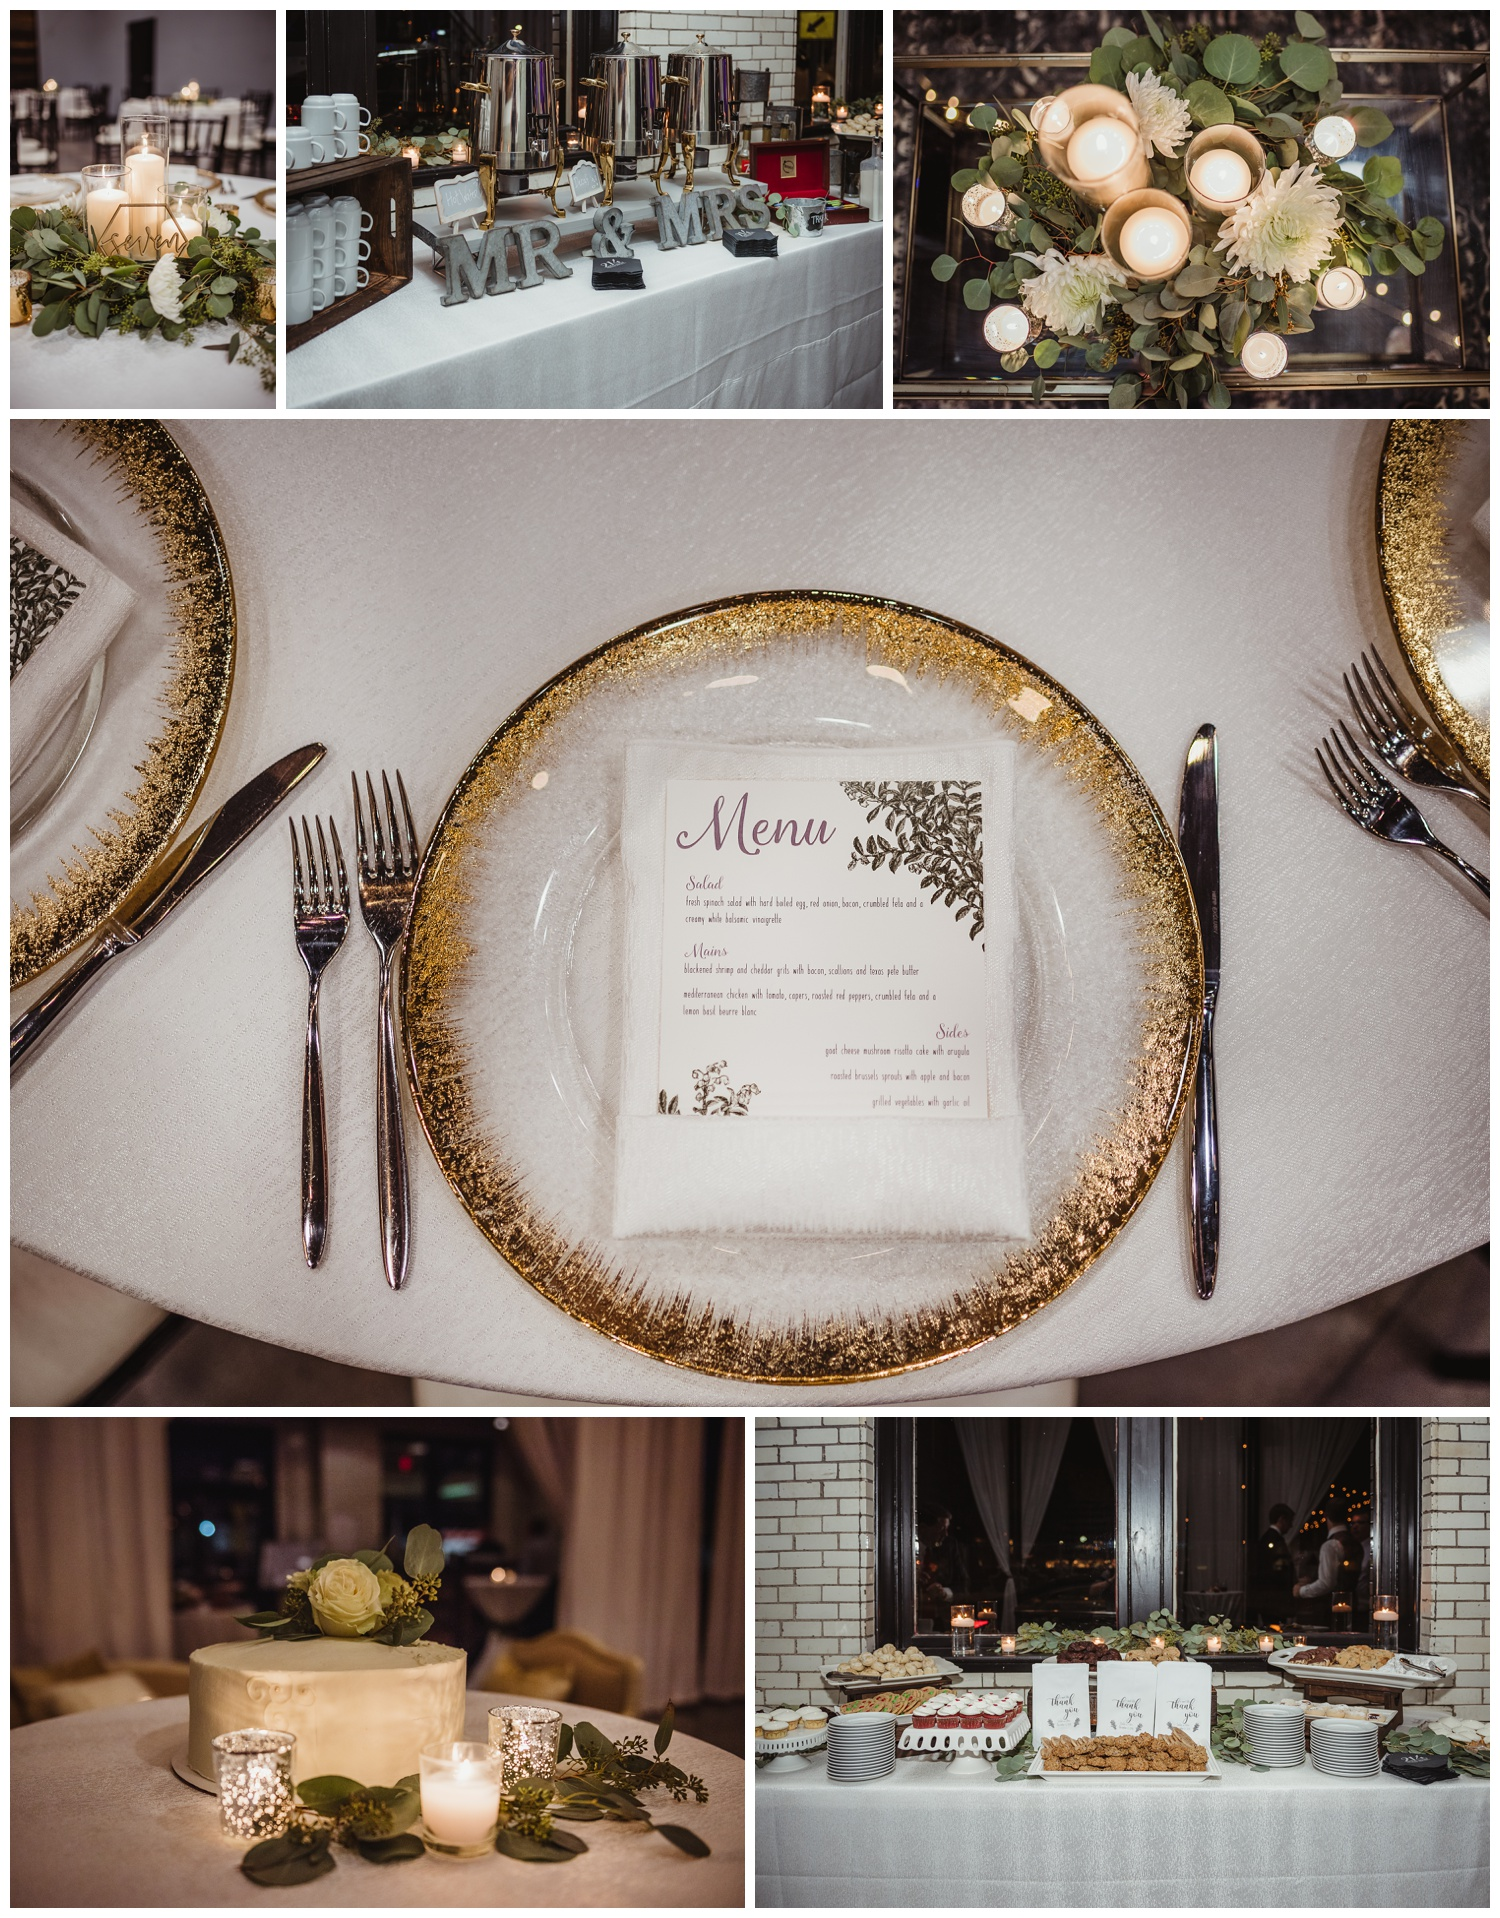 Wedding reception details in downtown Raleigh include gold chargers, lots of cookies, and a beautiful cake, photos by Rose Trail Images.